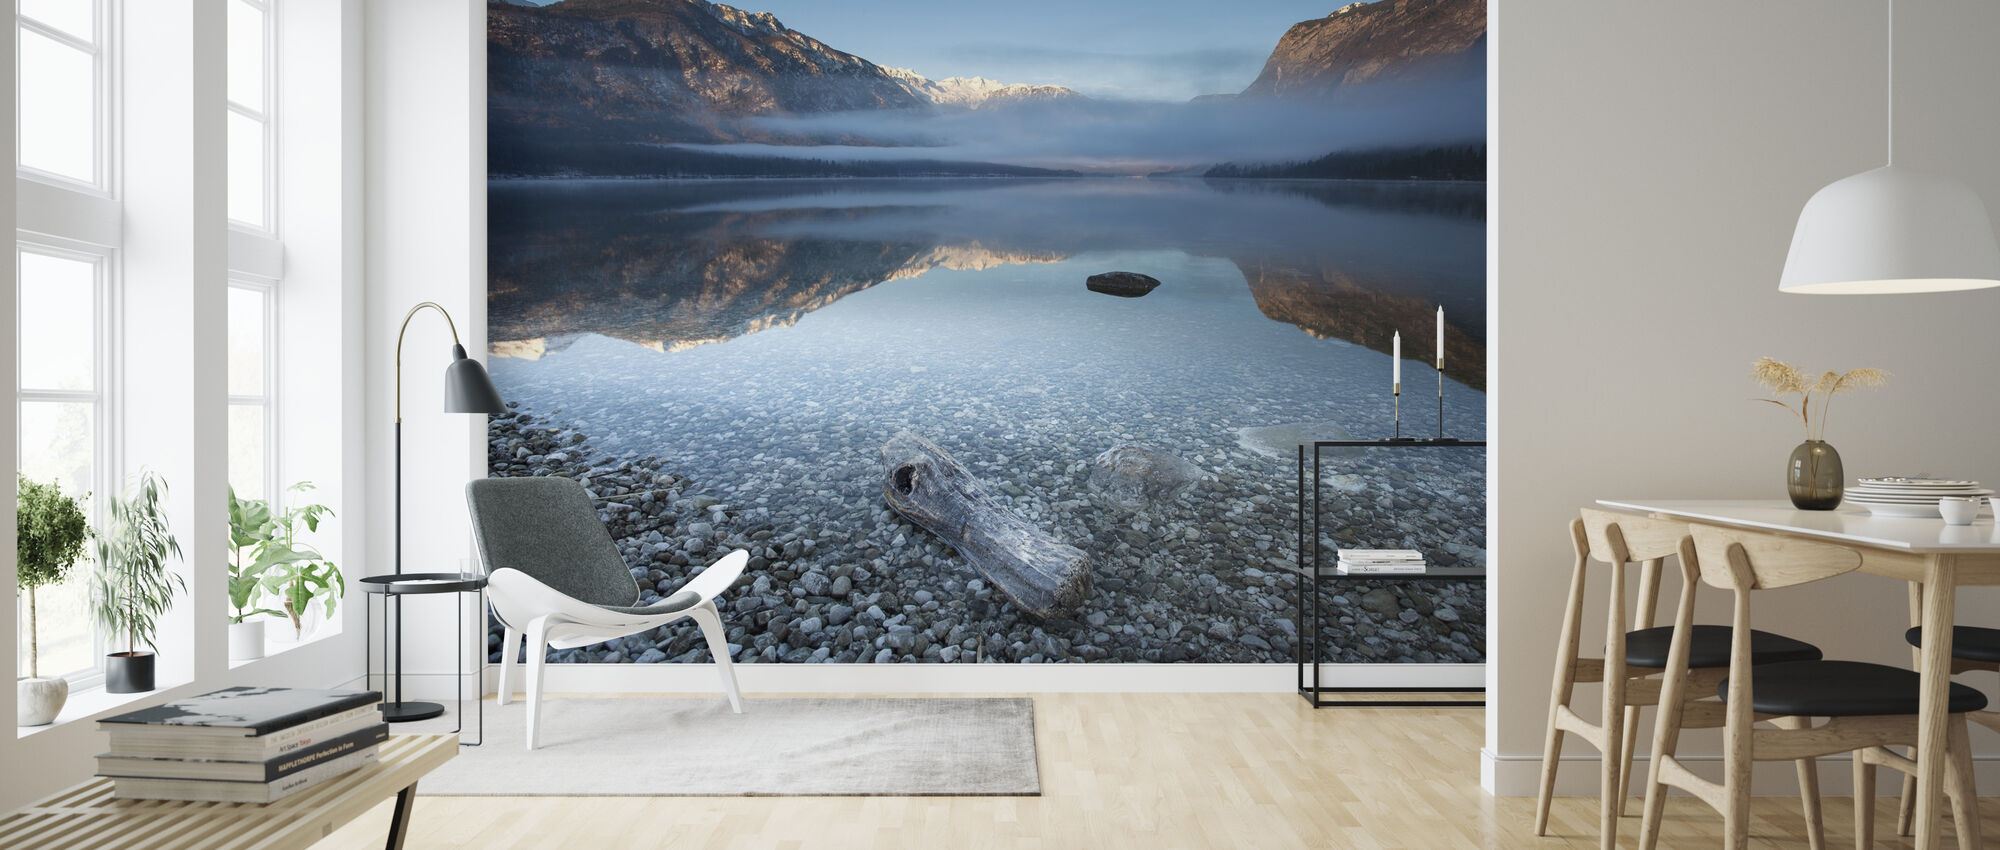 Bohinj's Tranquility - Wallpaper - Living Room